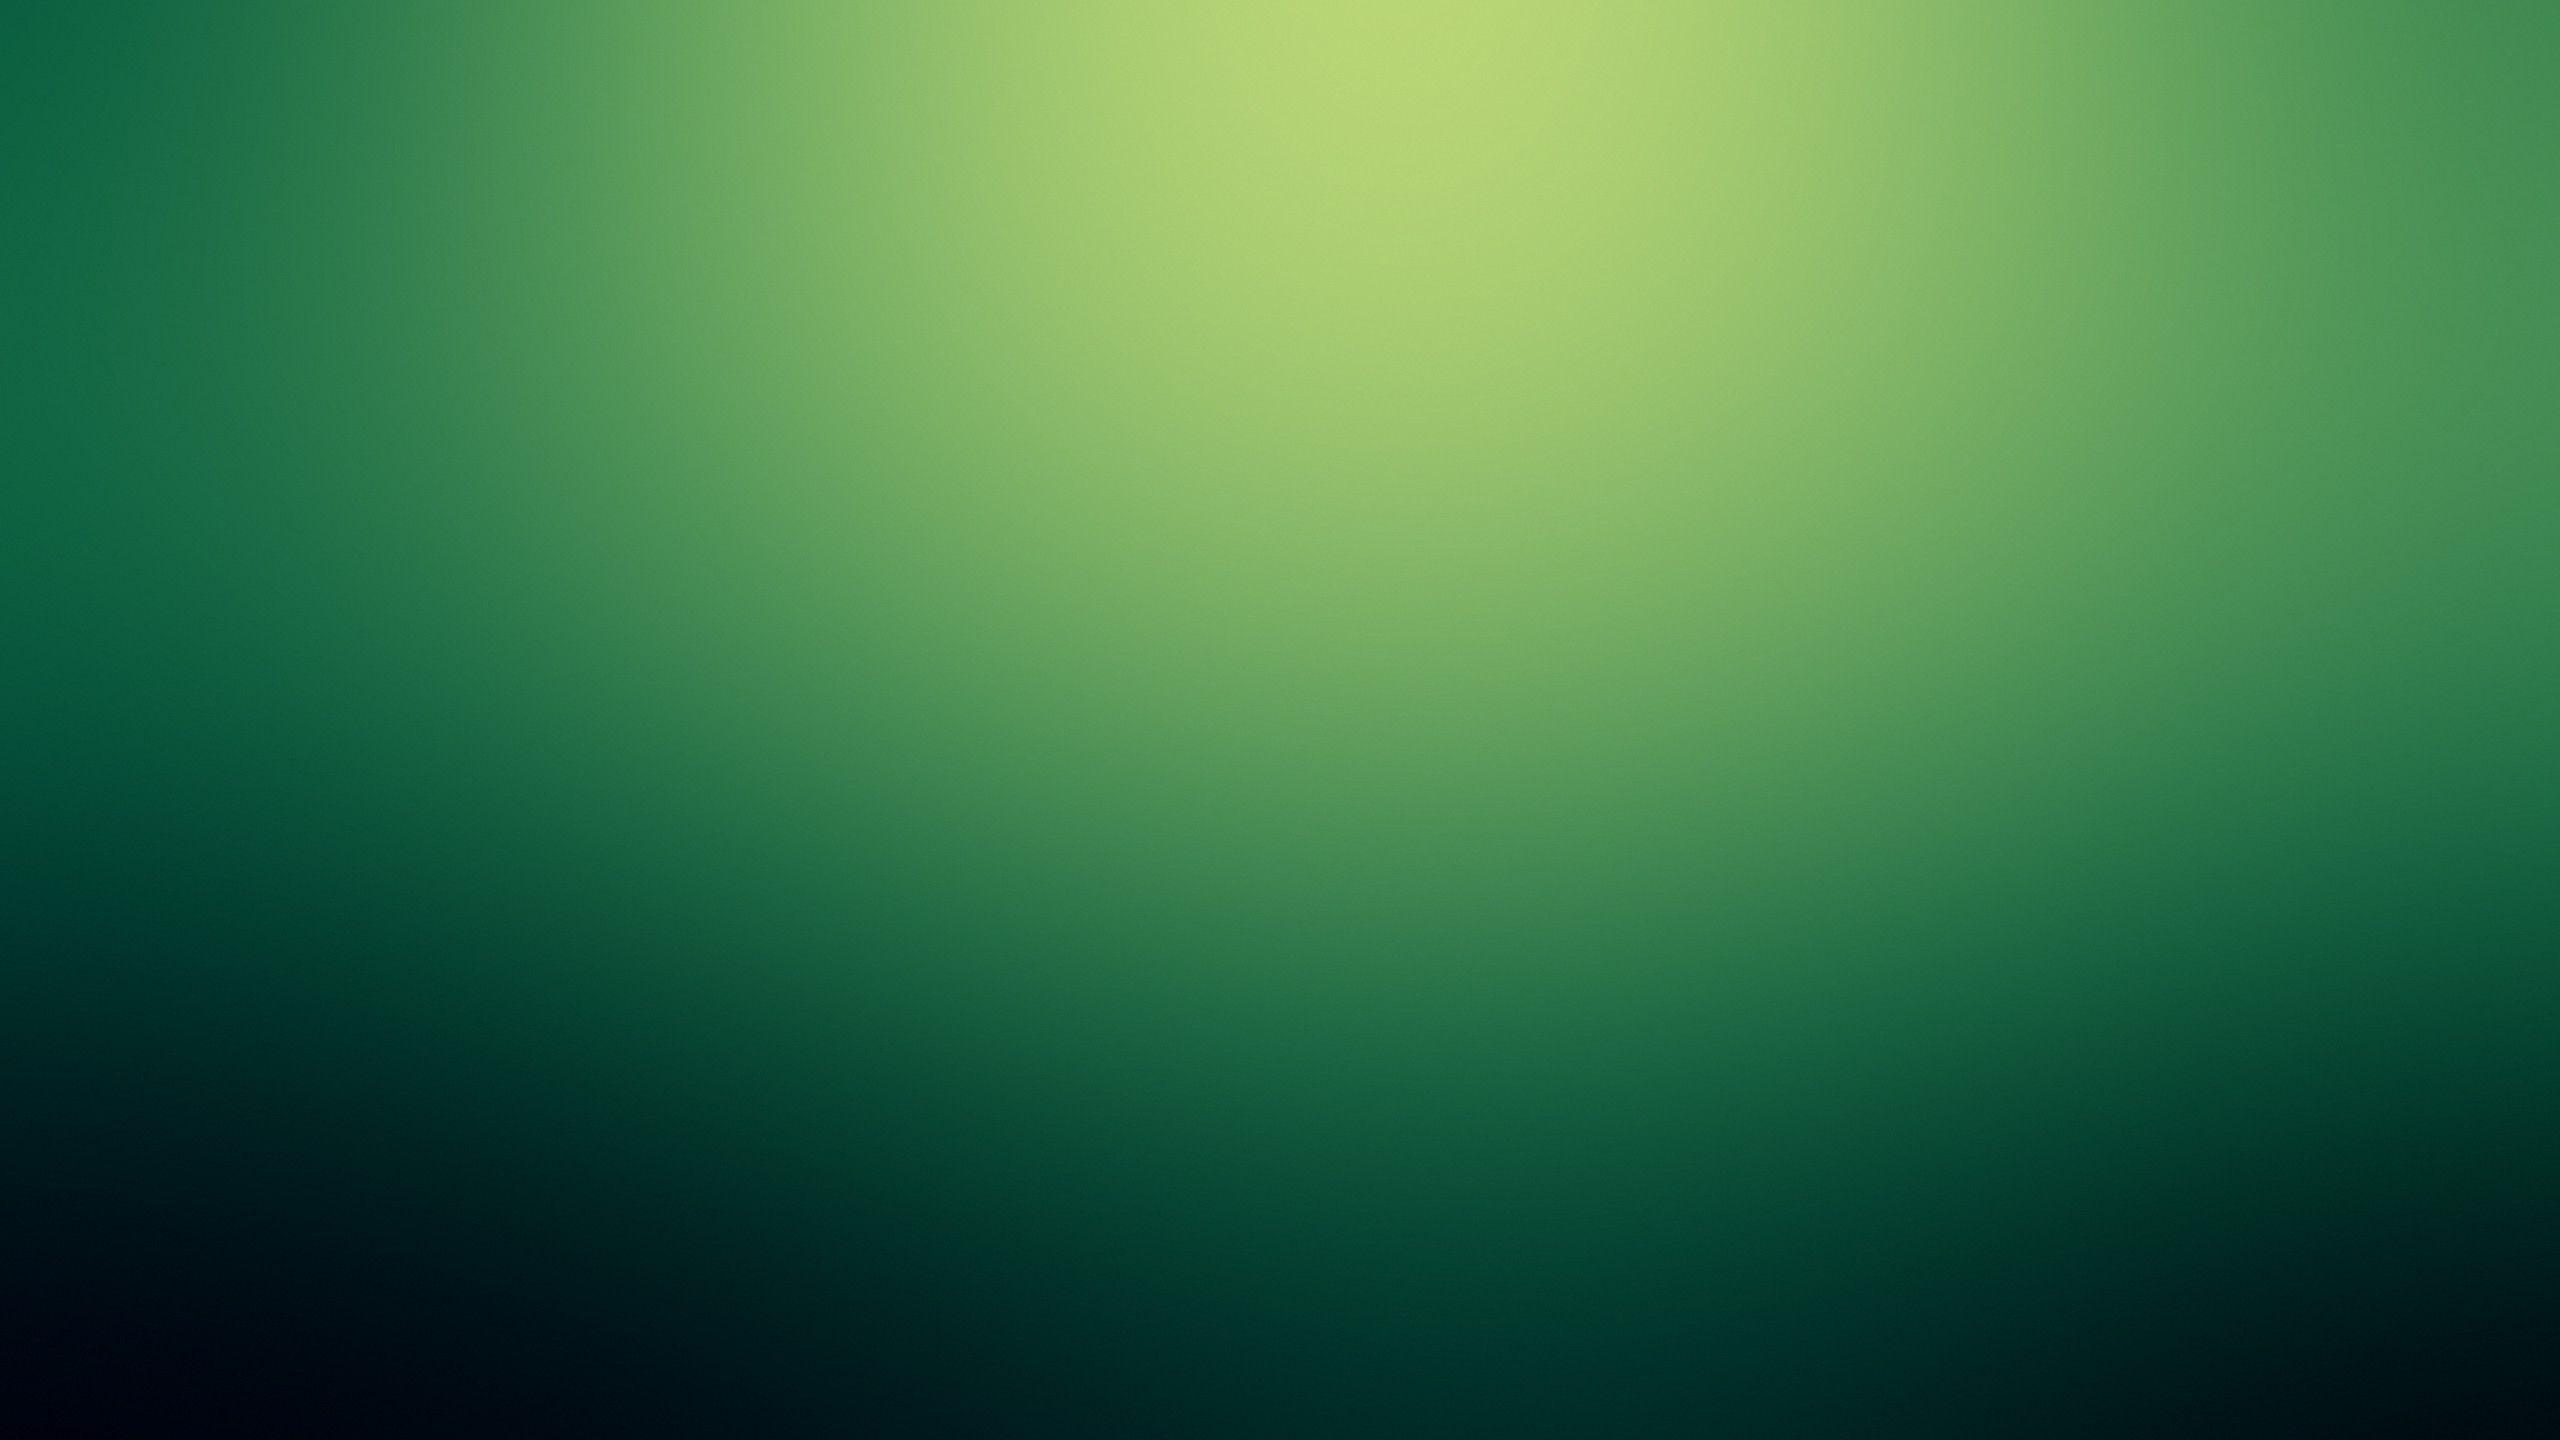 green gradient wallpaper 26051 2560x1440 px hdwallsource